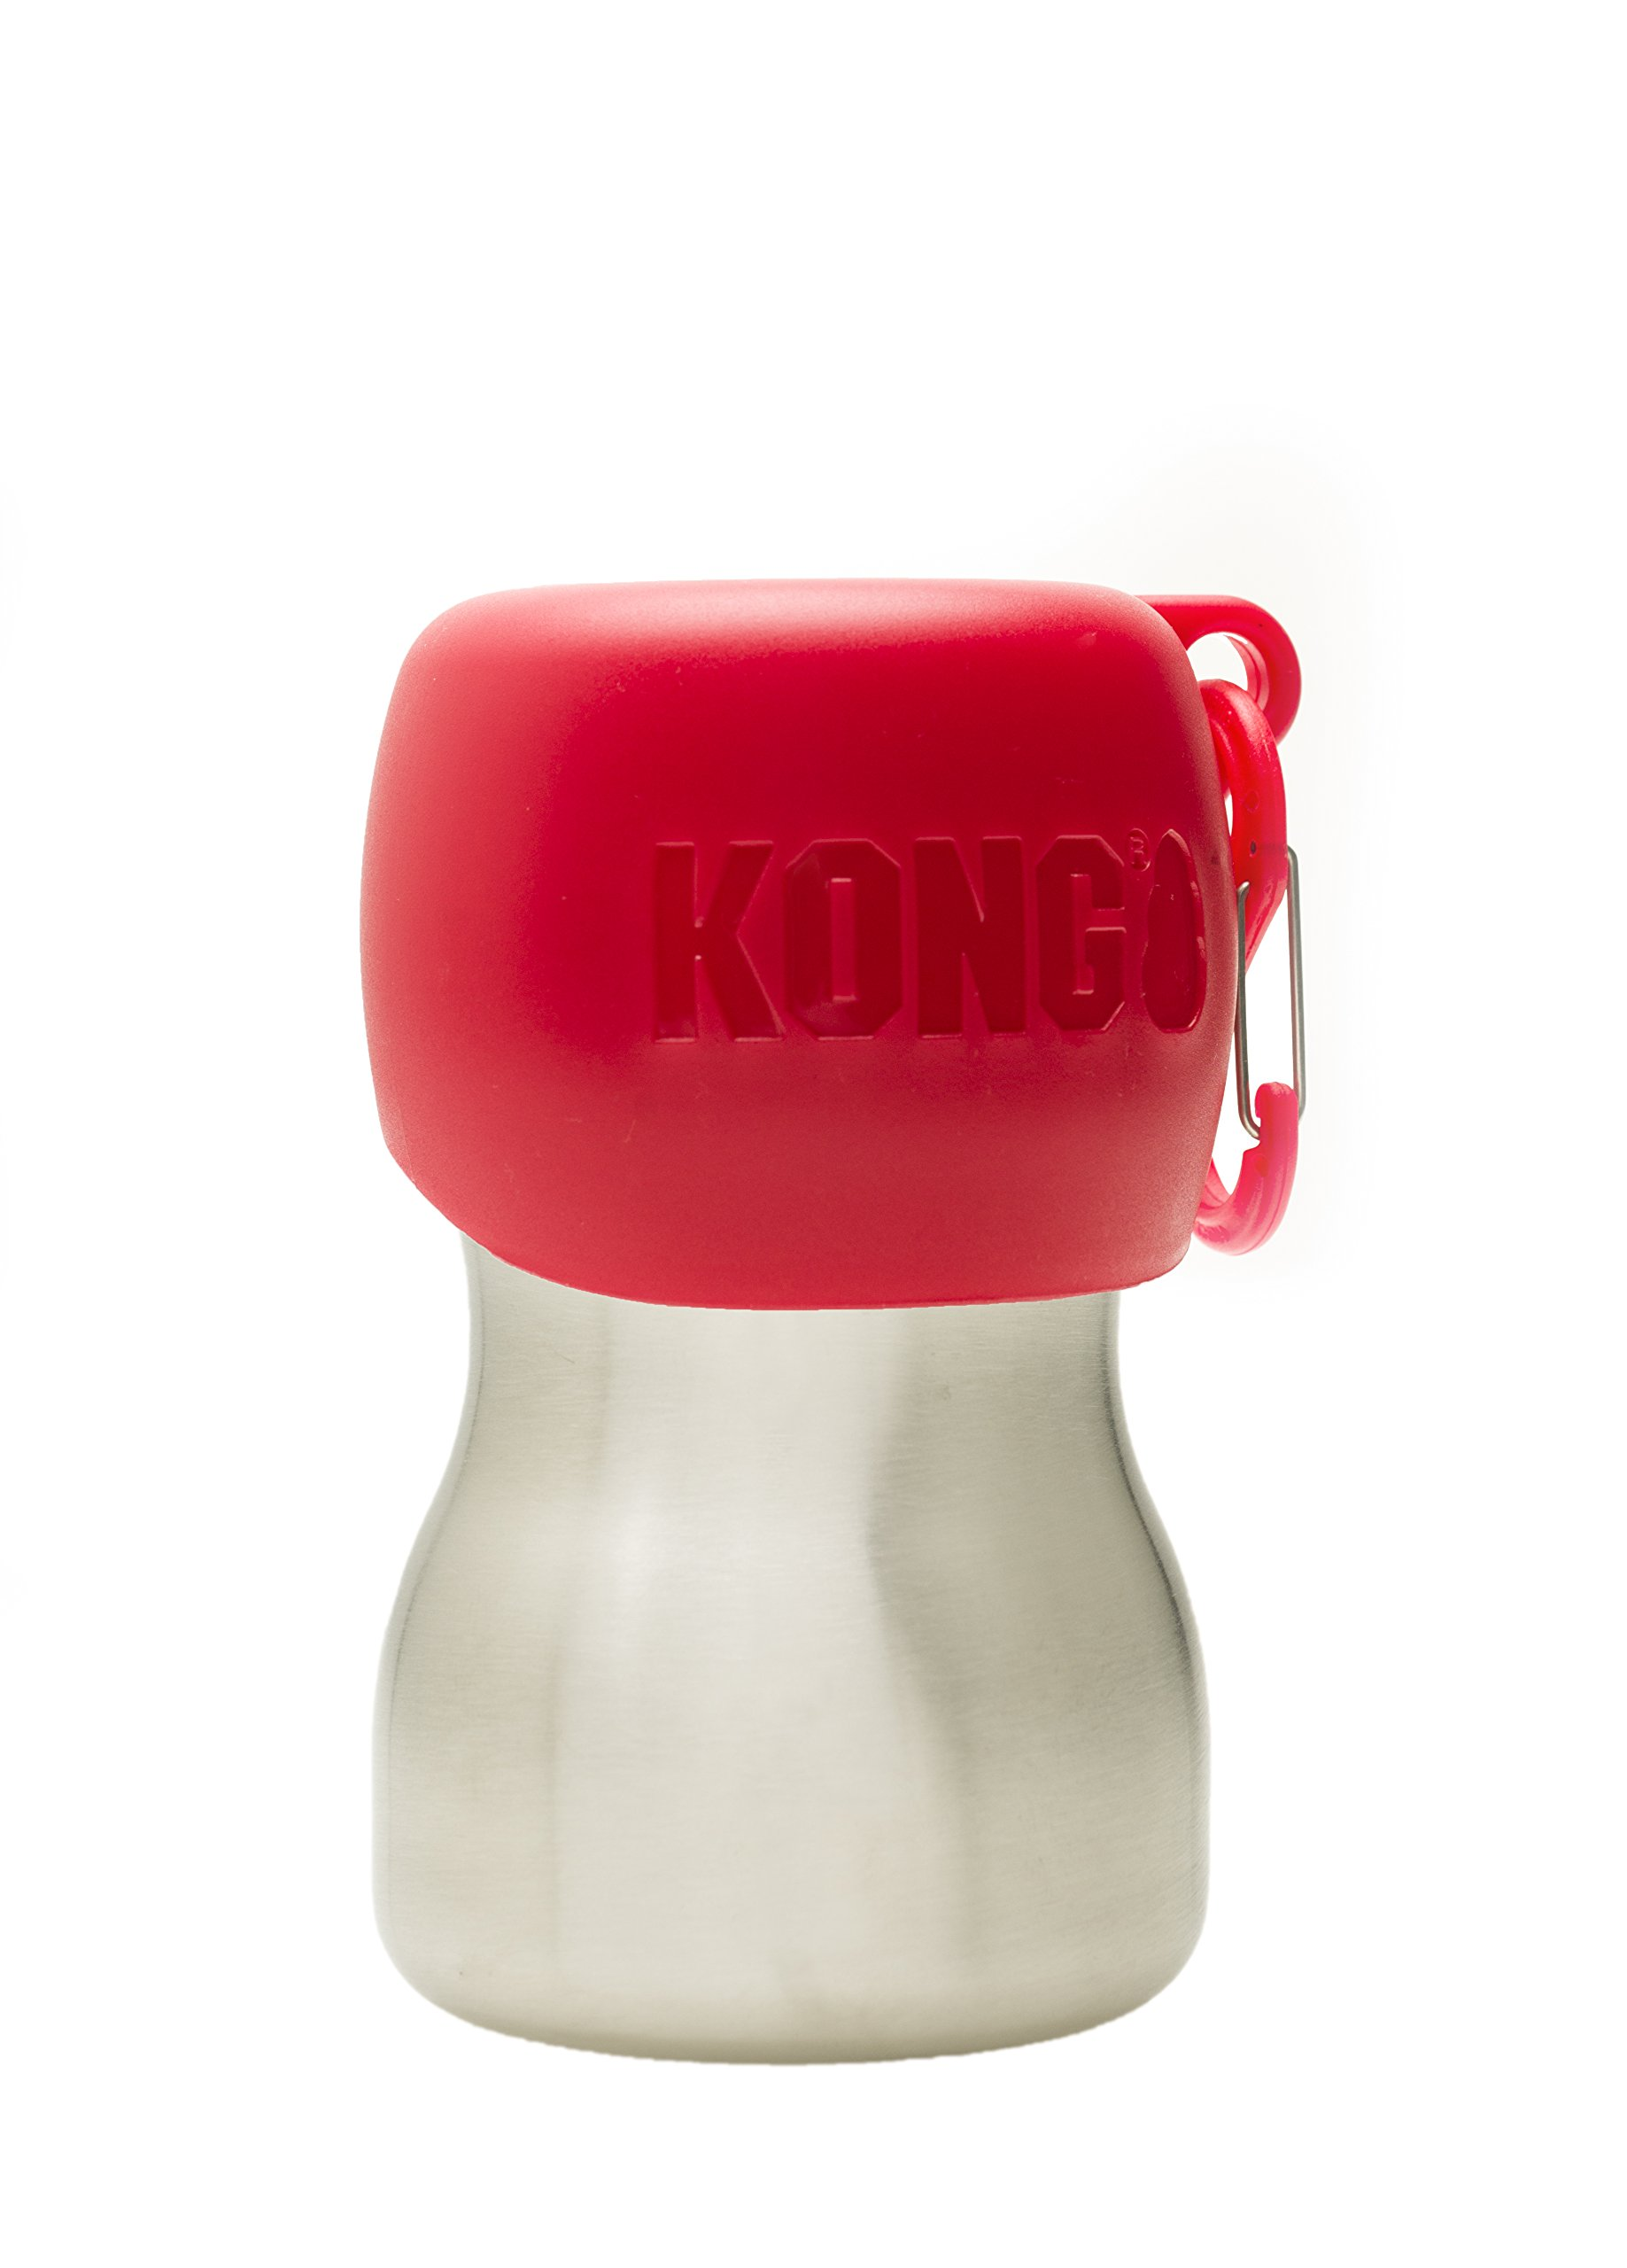 KONG H2O - Stainless Steel Dog Water Bottle - 9.5 oz - Red